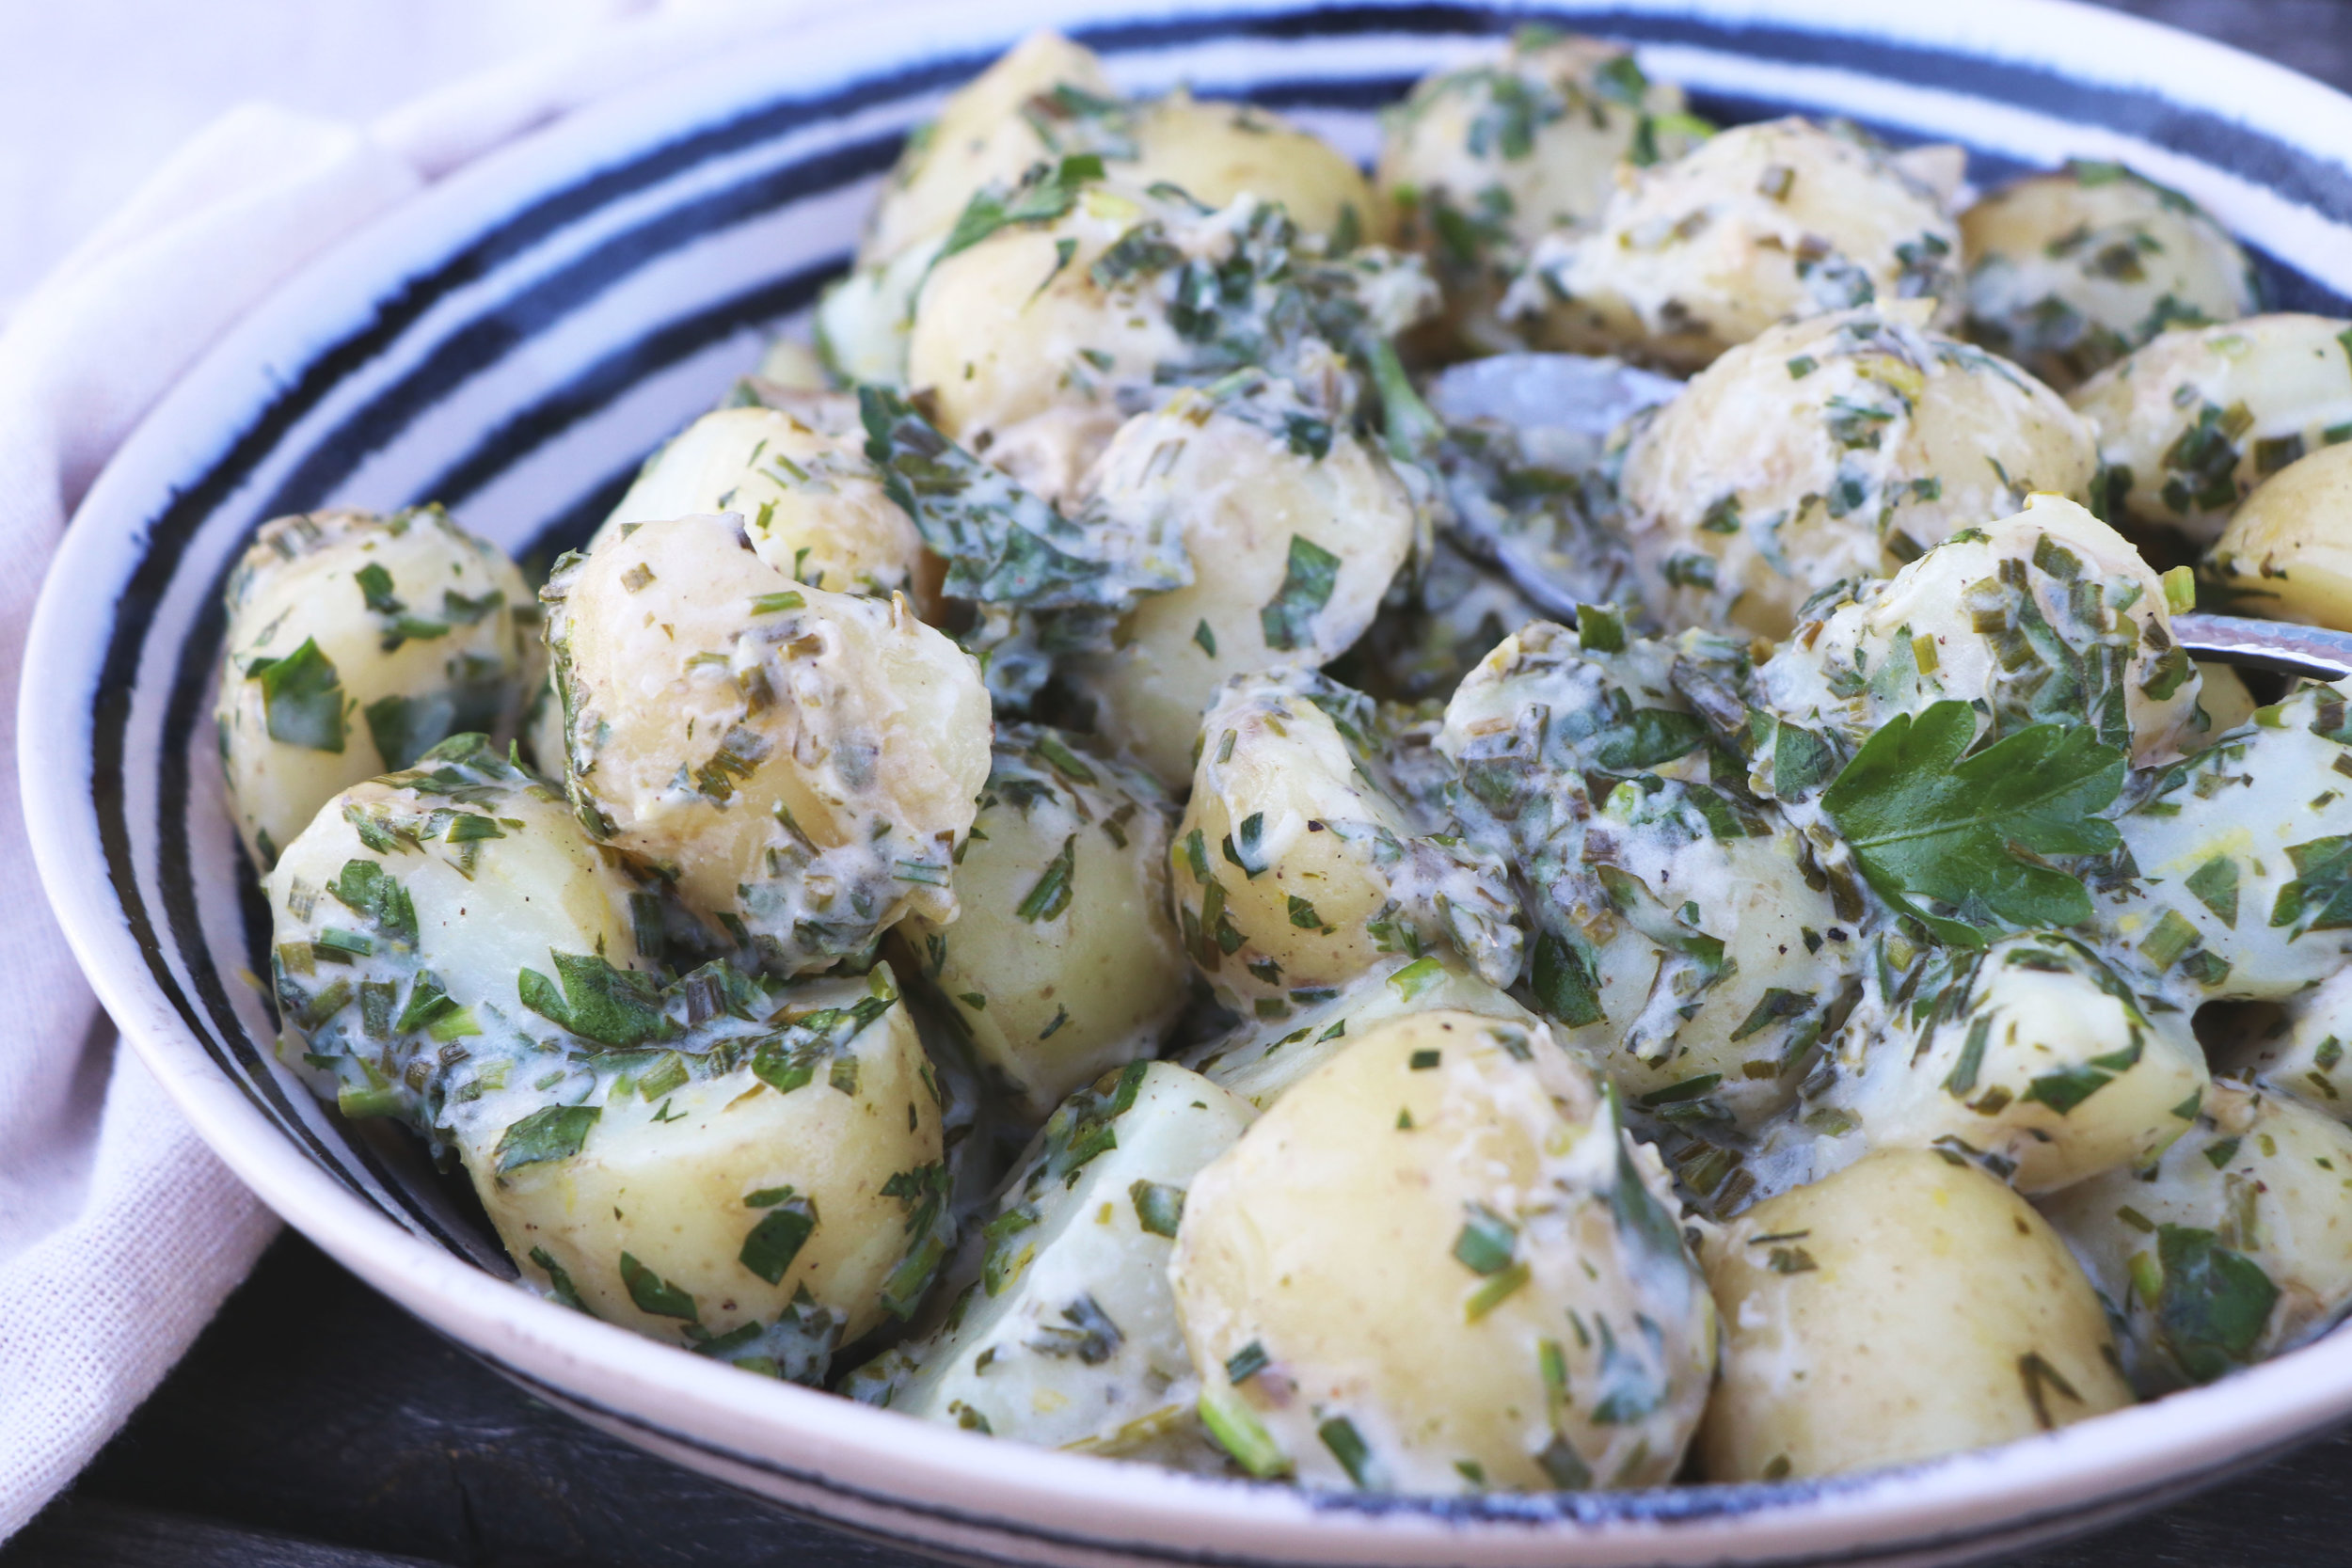 This fresh and easy potato salad will become a staple for your summer BBQs and dinner parties. - prep time 15 mins    total time 20 mins     serves 4-6